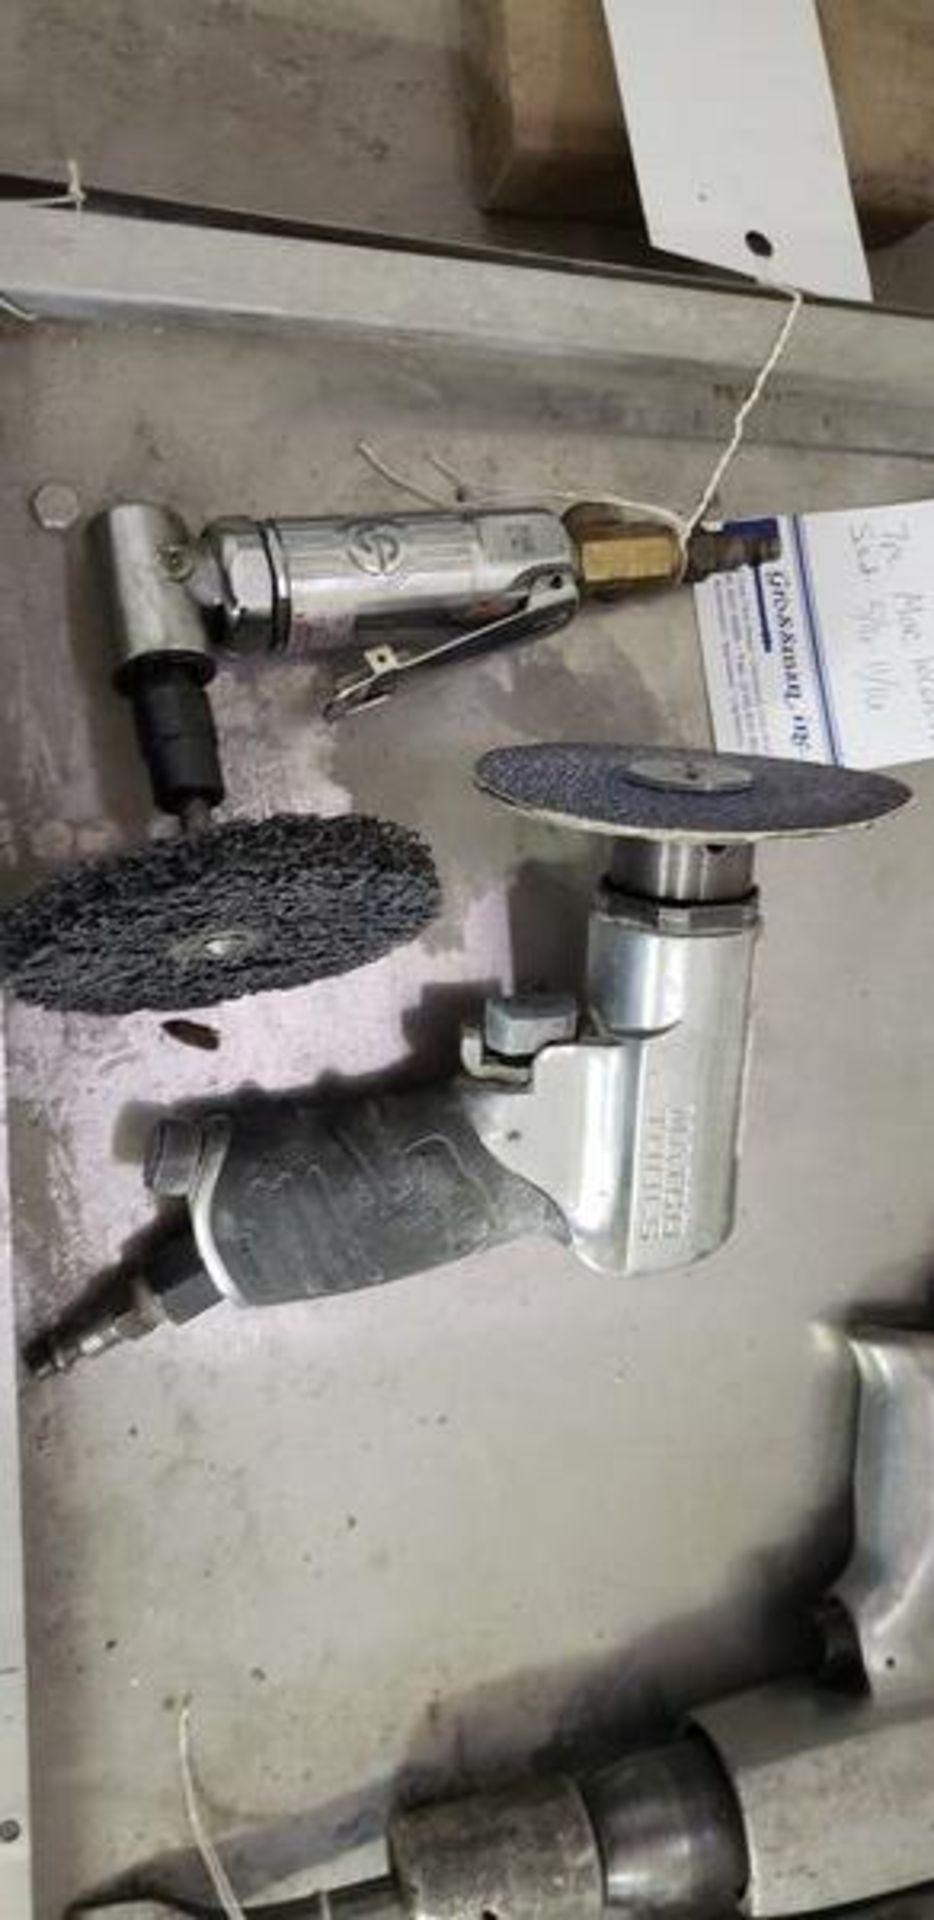 PMEUMATIC GRINDERS - MATCO AND CHICAGO